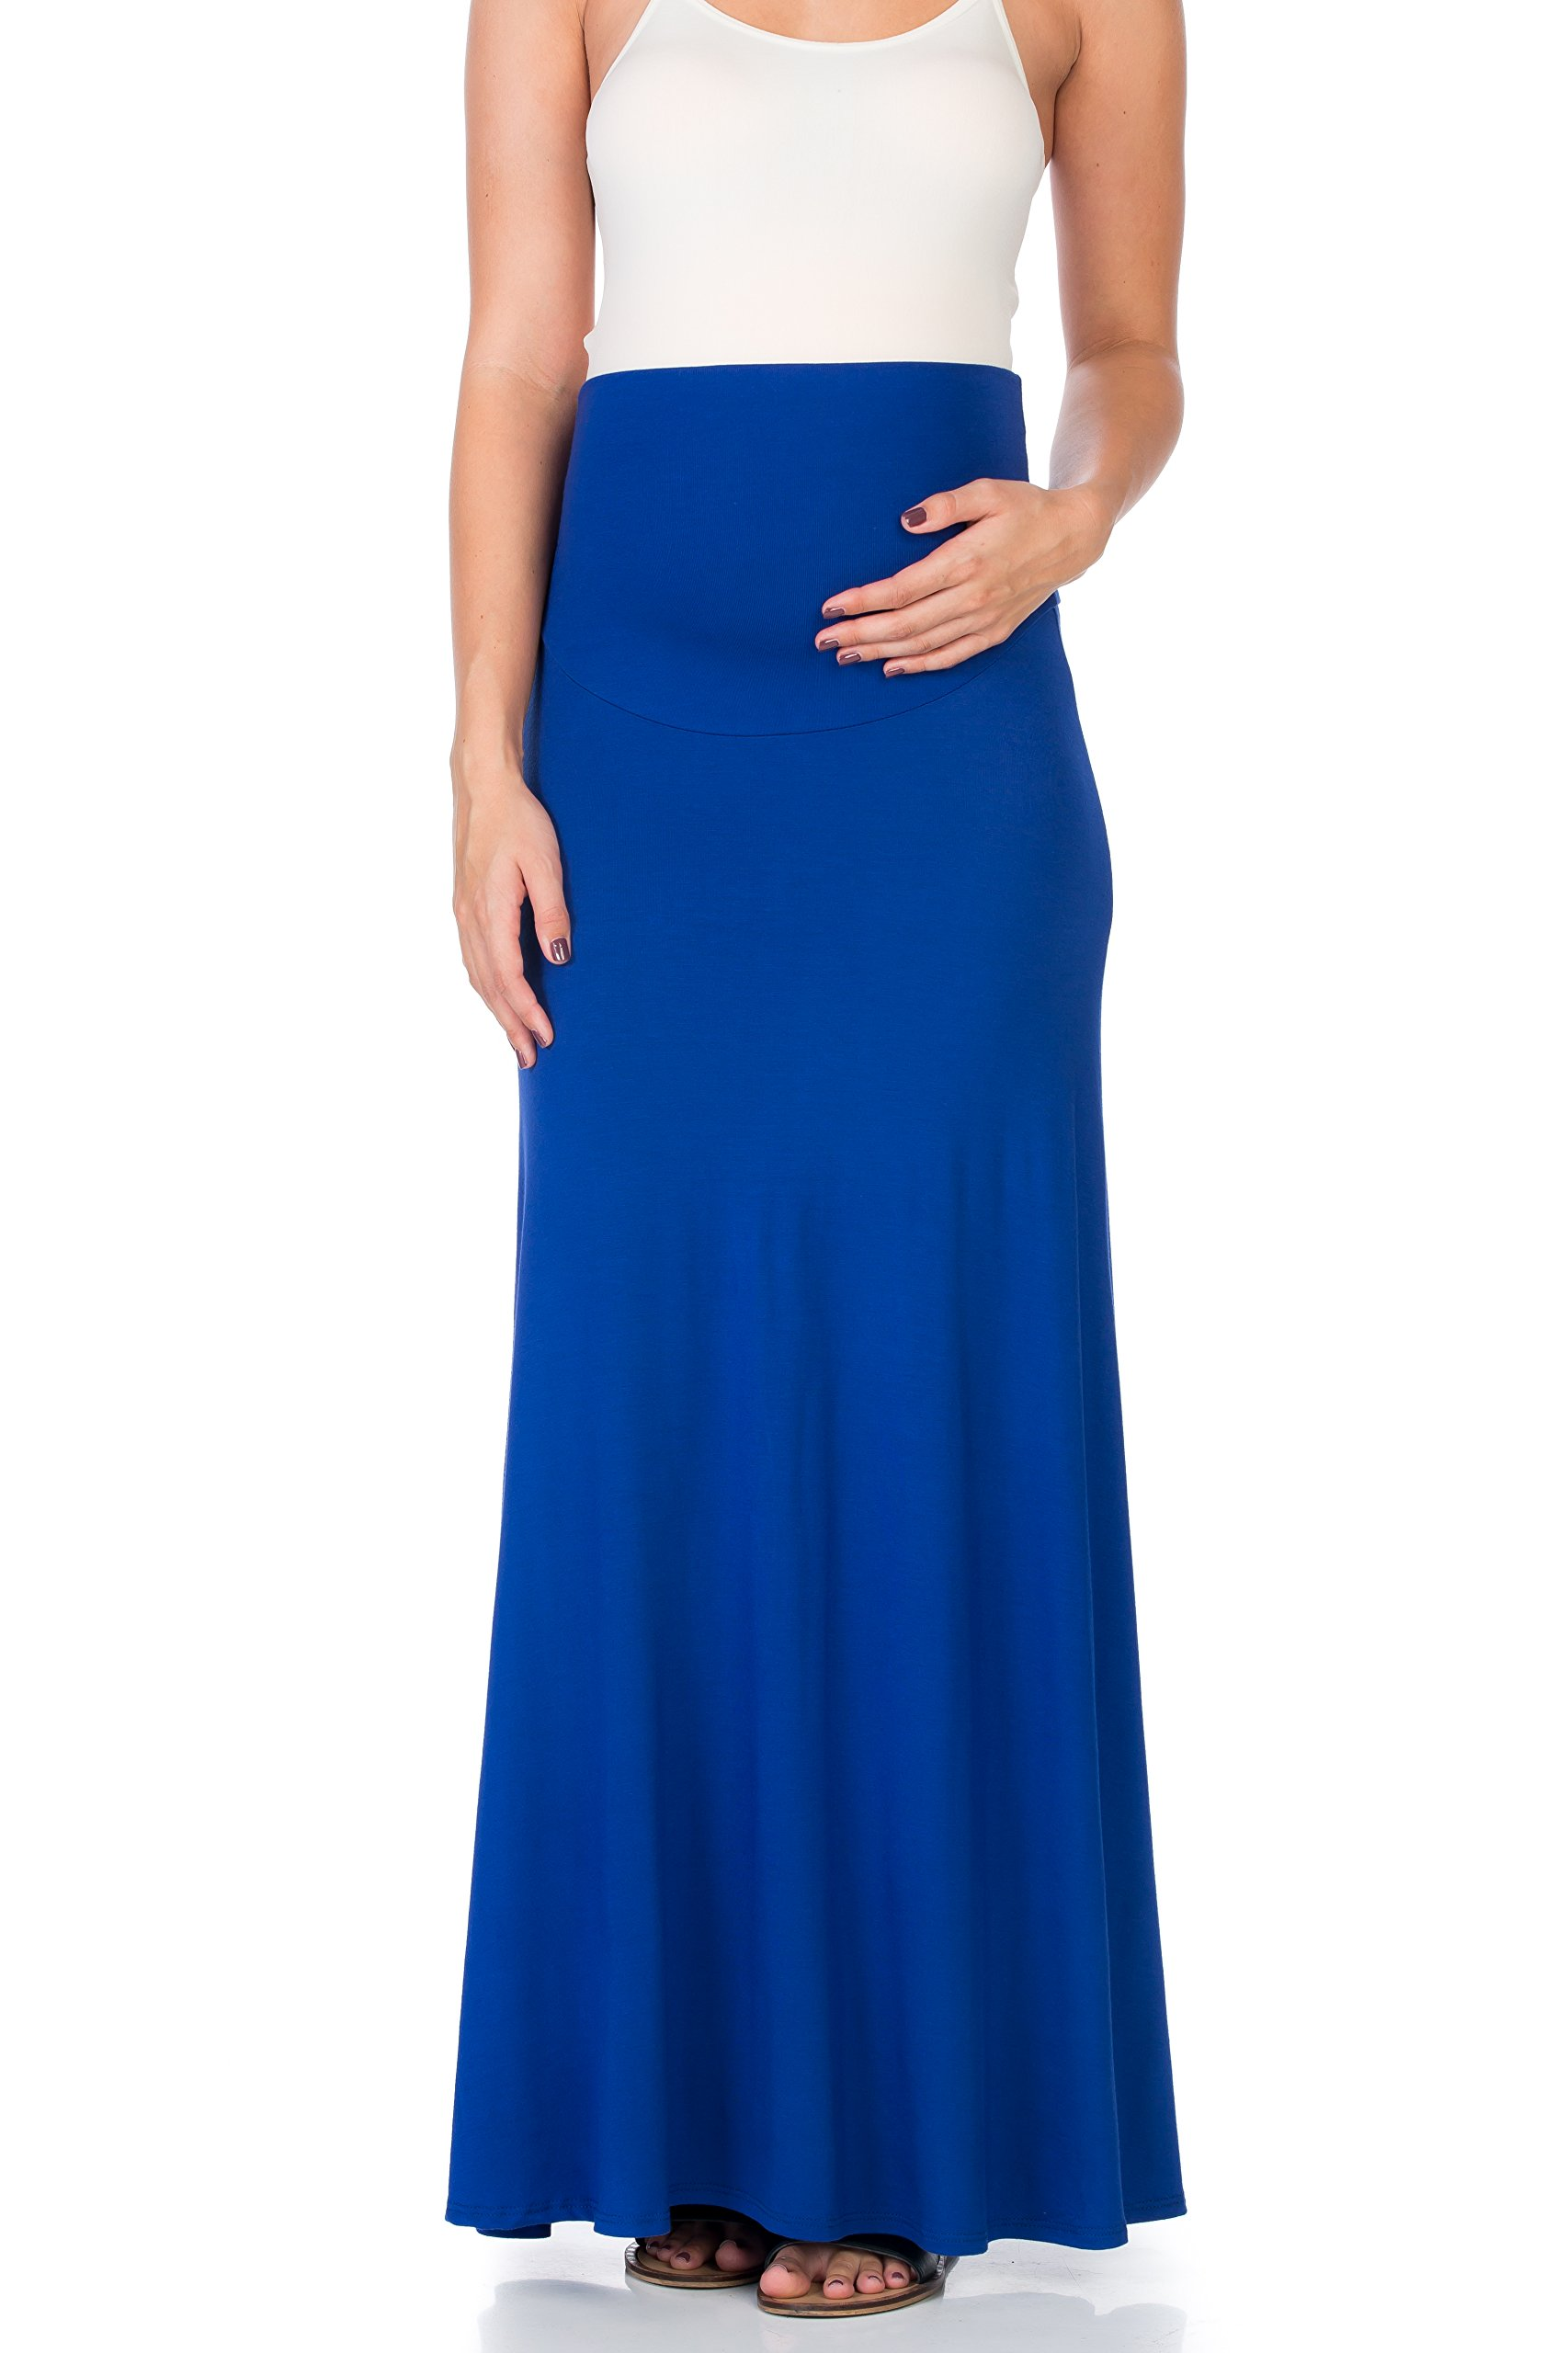 My Bump Women's High Waisted Floor Length Maternity Maxi Skirt With Tummy Control(Made in USA) (LARGE, ROYAL)